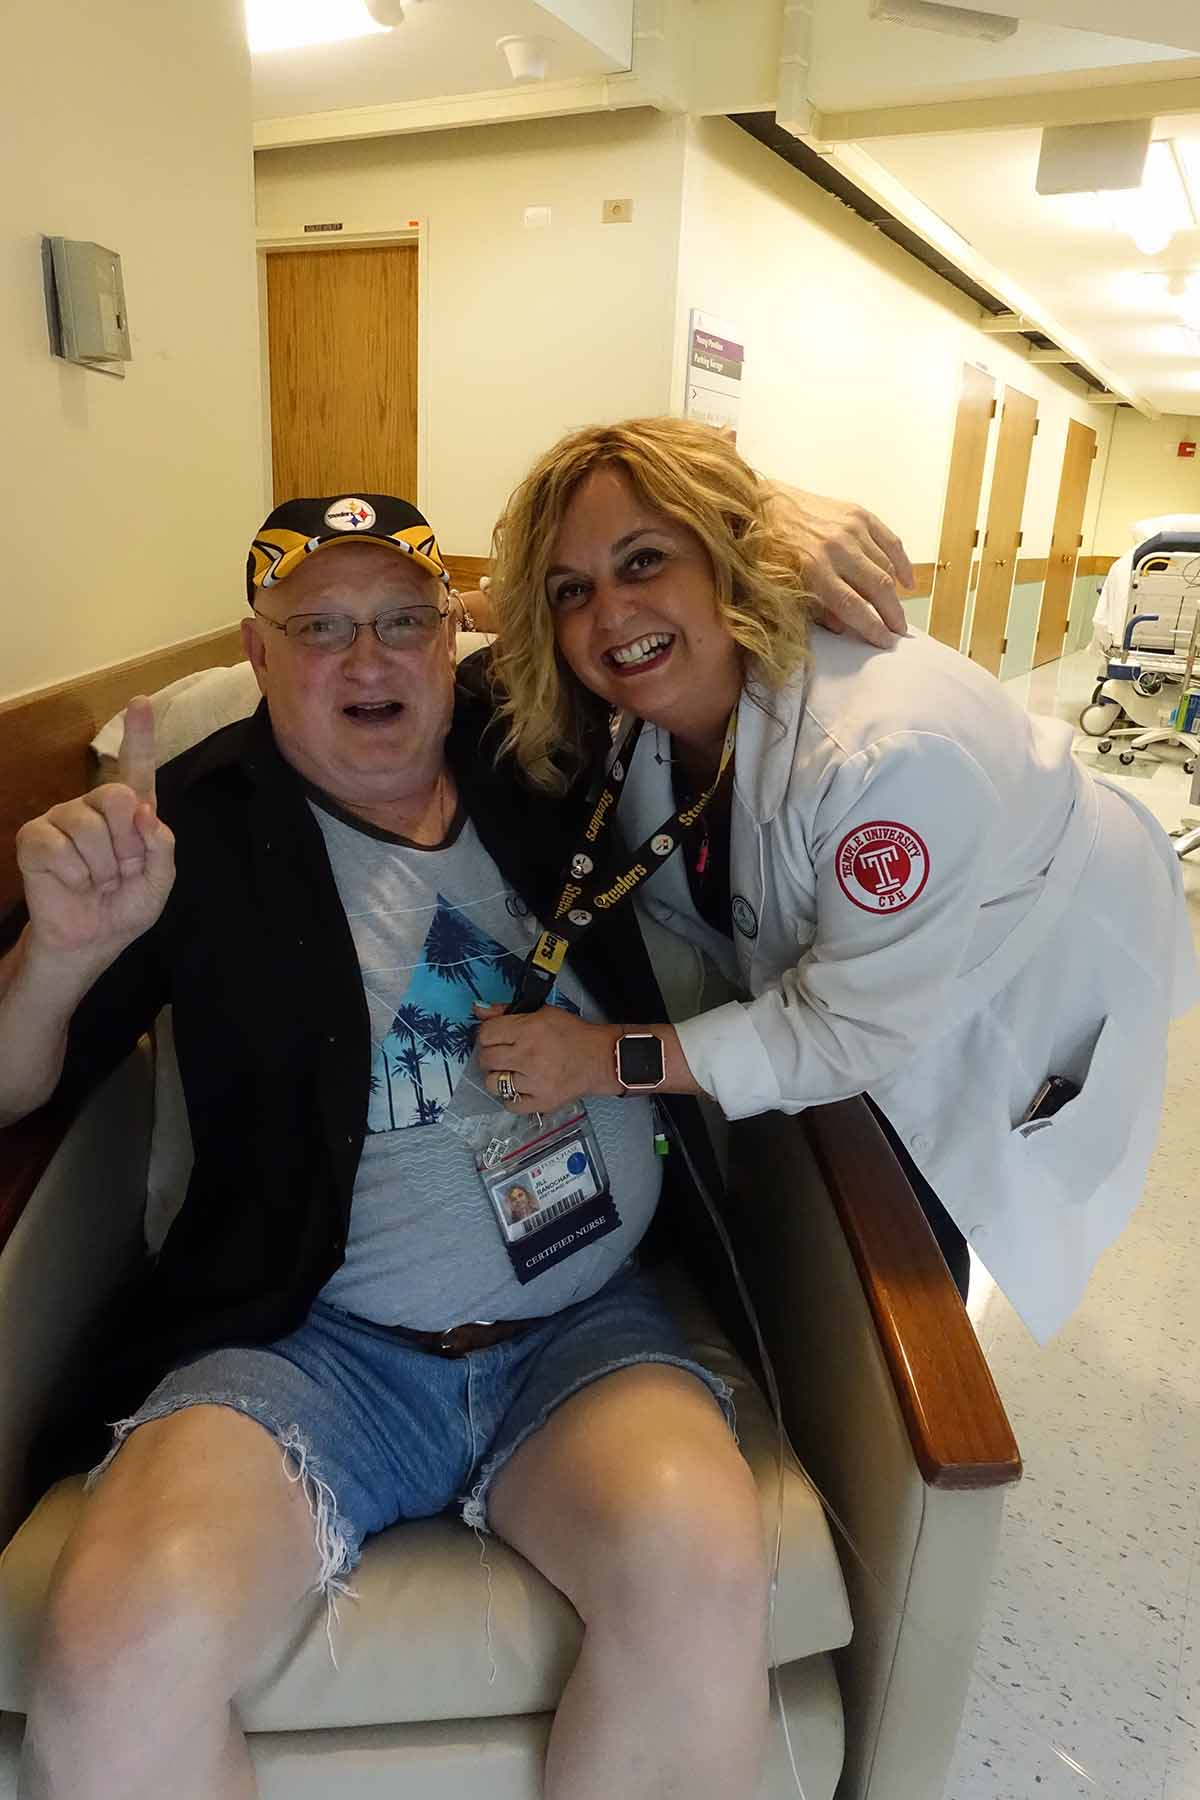 Jill Ranochak and beloved patient Joe, who inspires her every day.